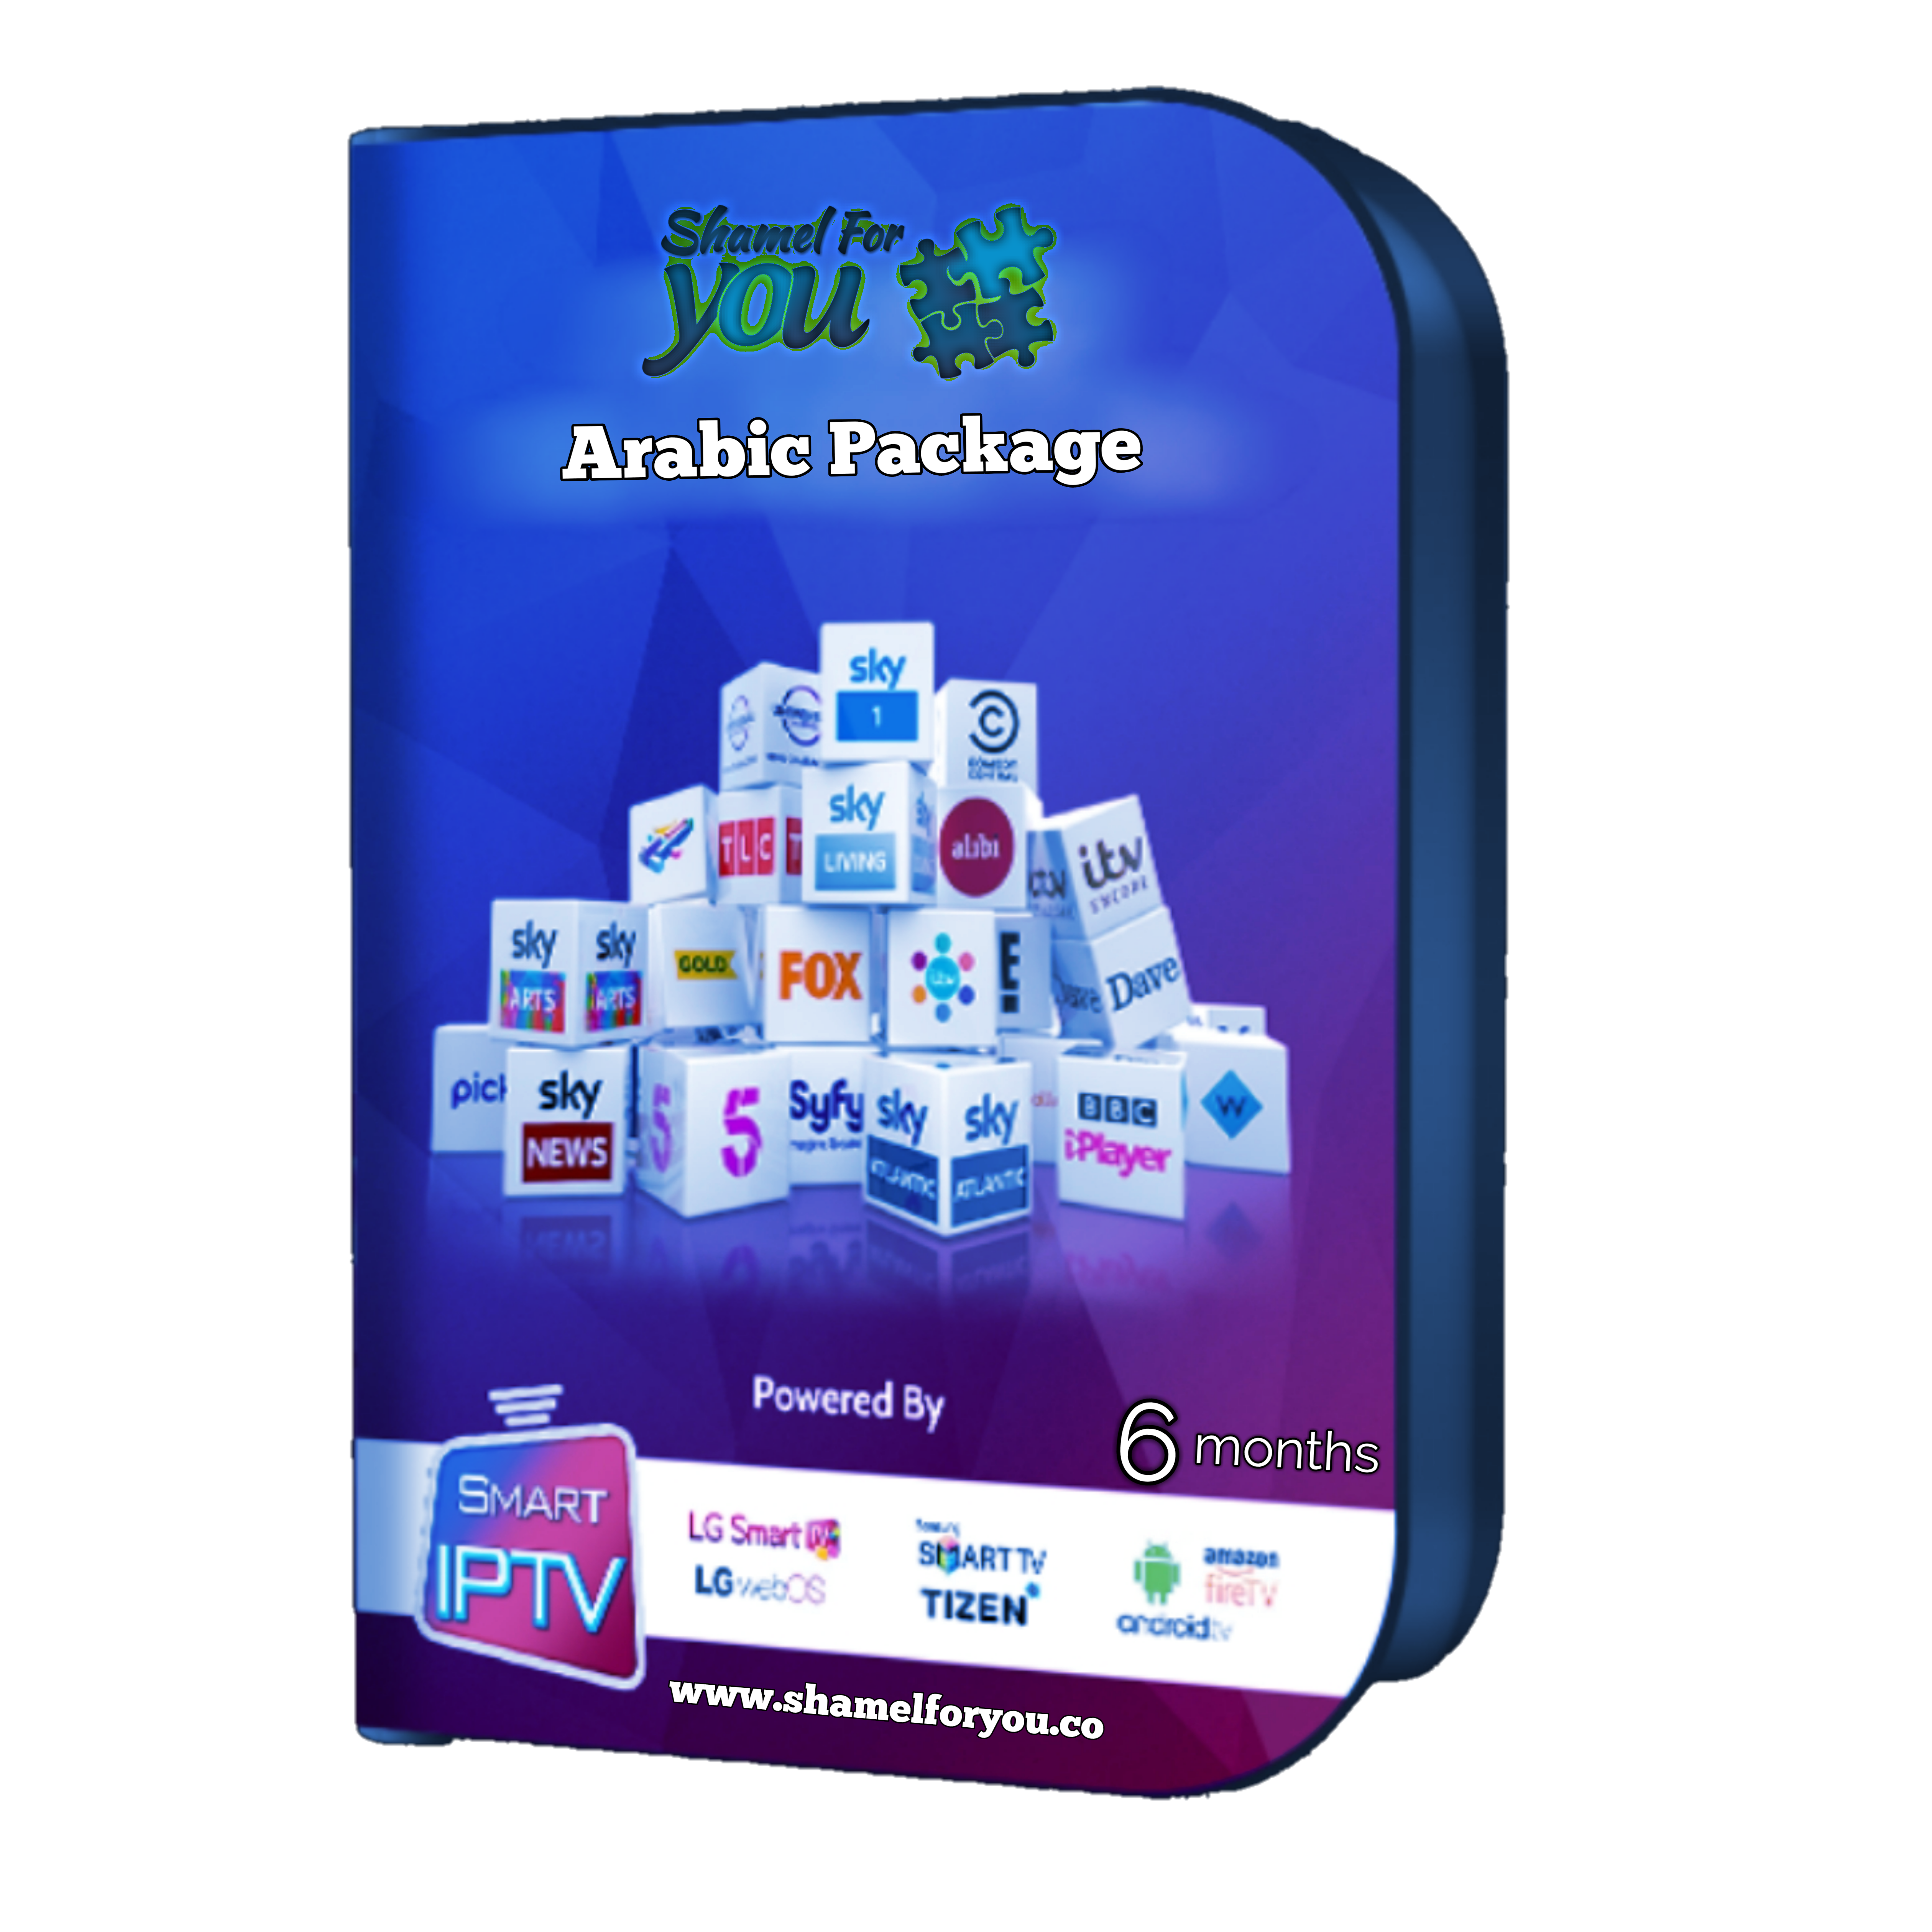 IPTV Shamel 4 You 6 months arabic 00353